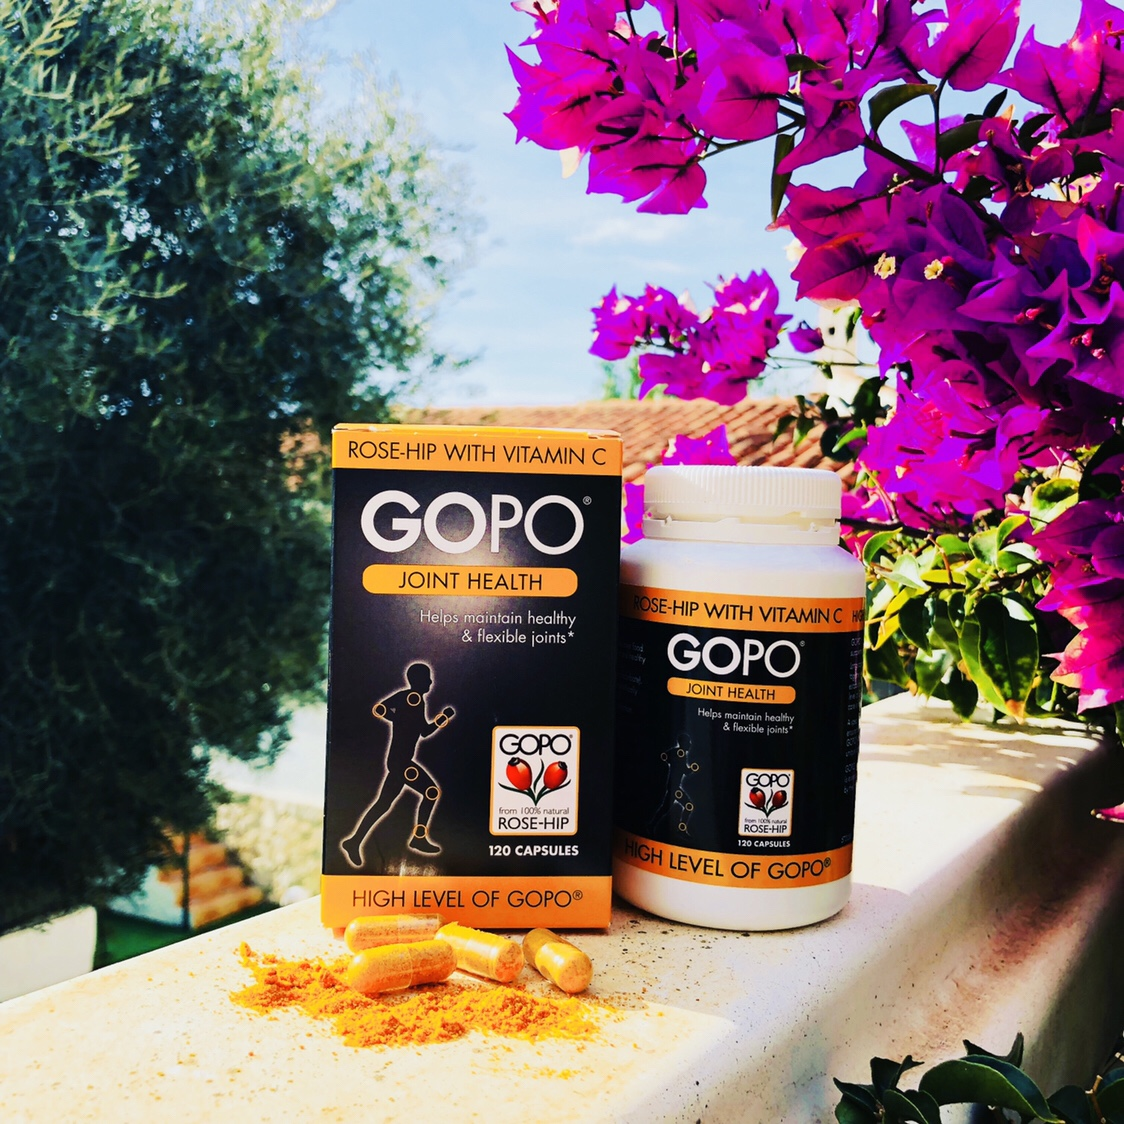 GOPO Joint Health with Spanish gardens in the background